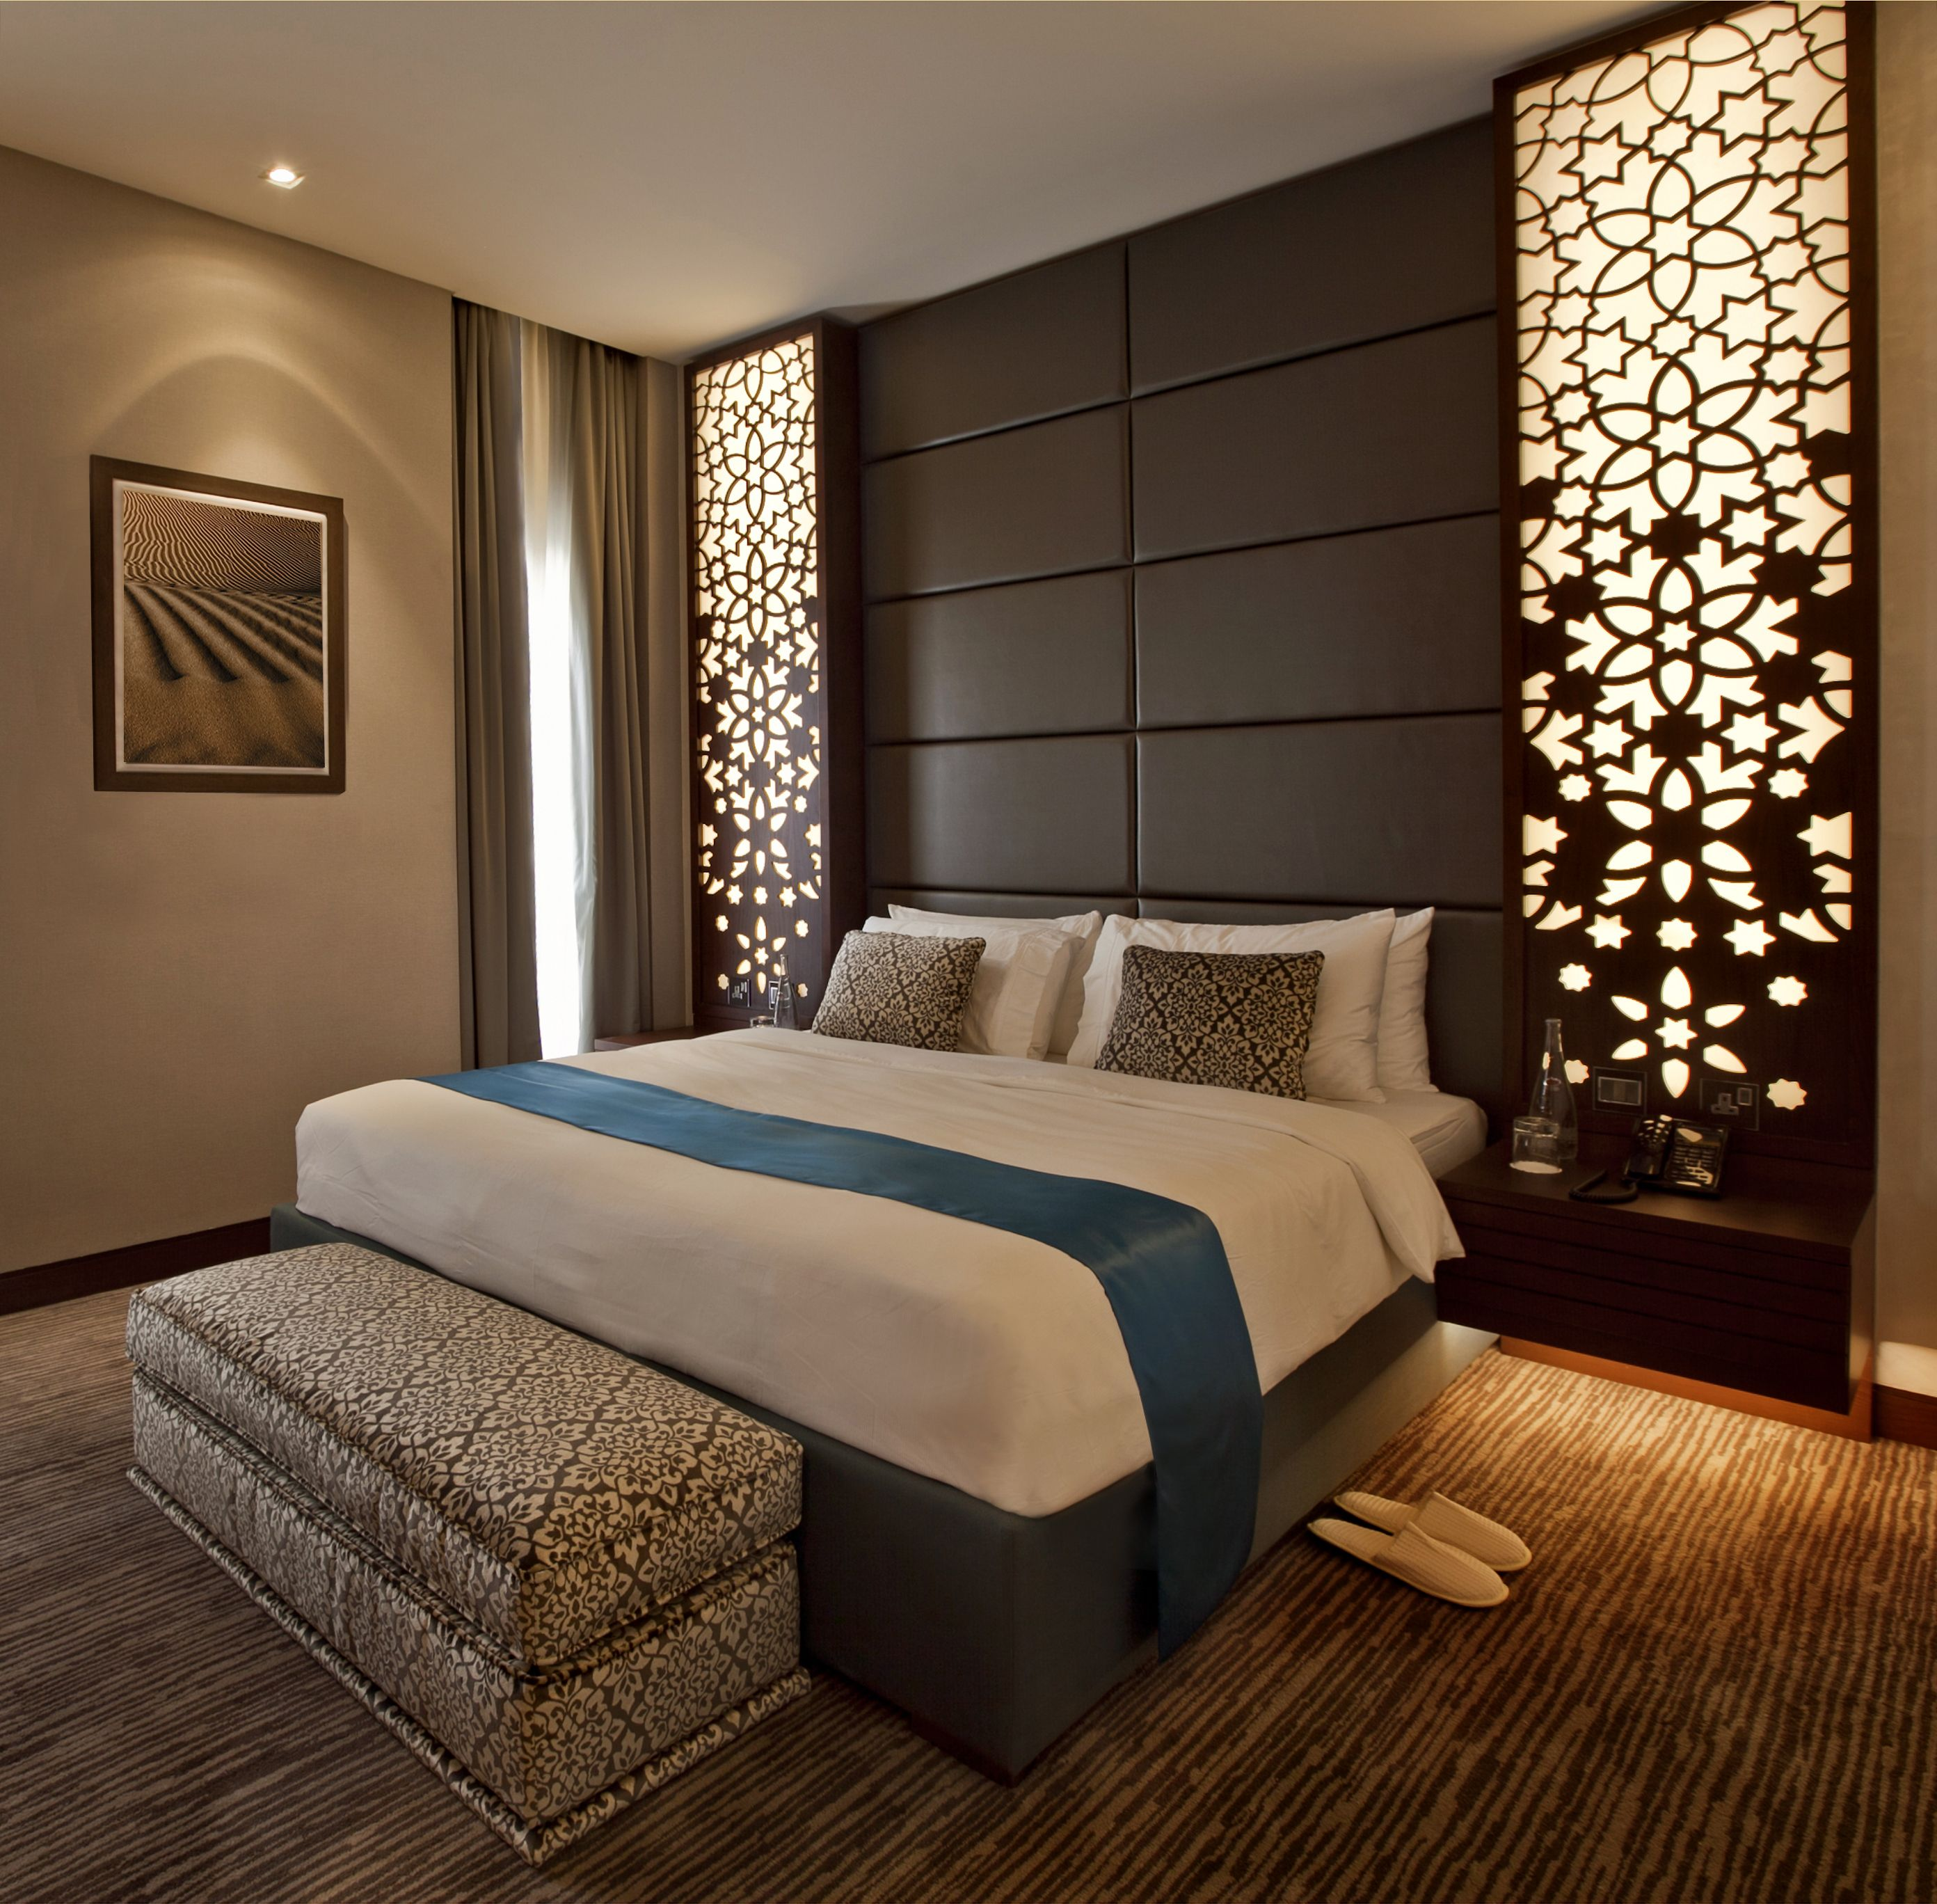 Modern Beautiful Bedrooms Interior Decoration Designs: Each One Of Our 45 Beautiful Rooms & Suites Boasts